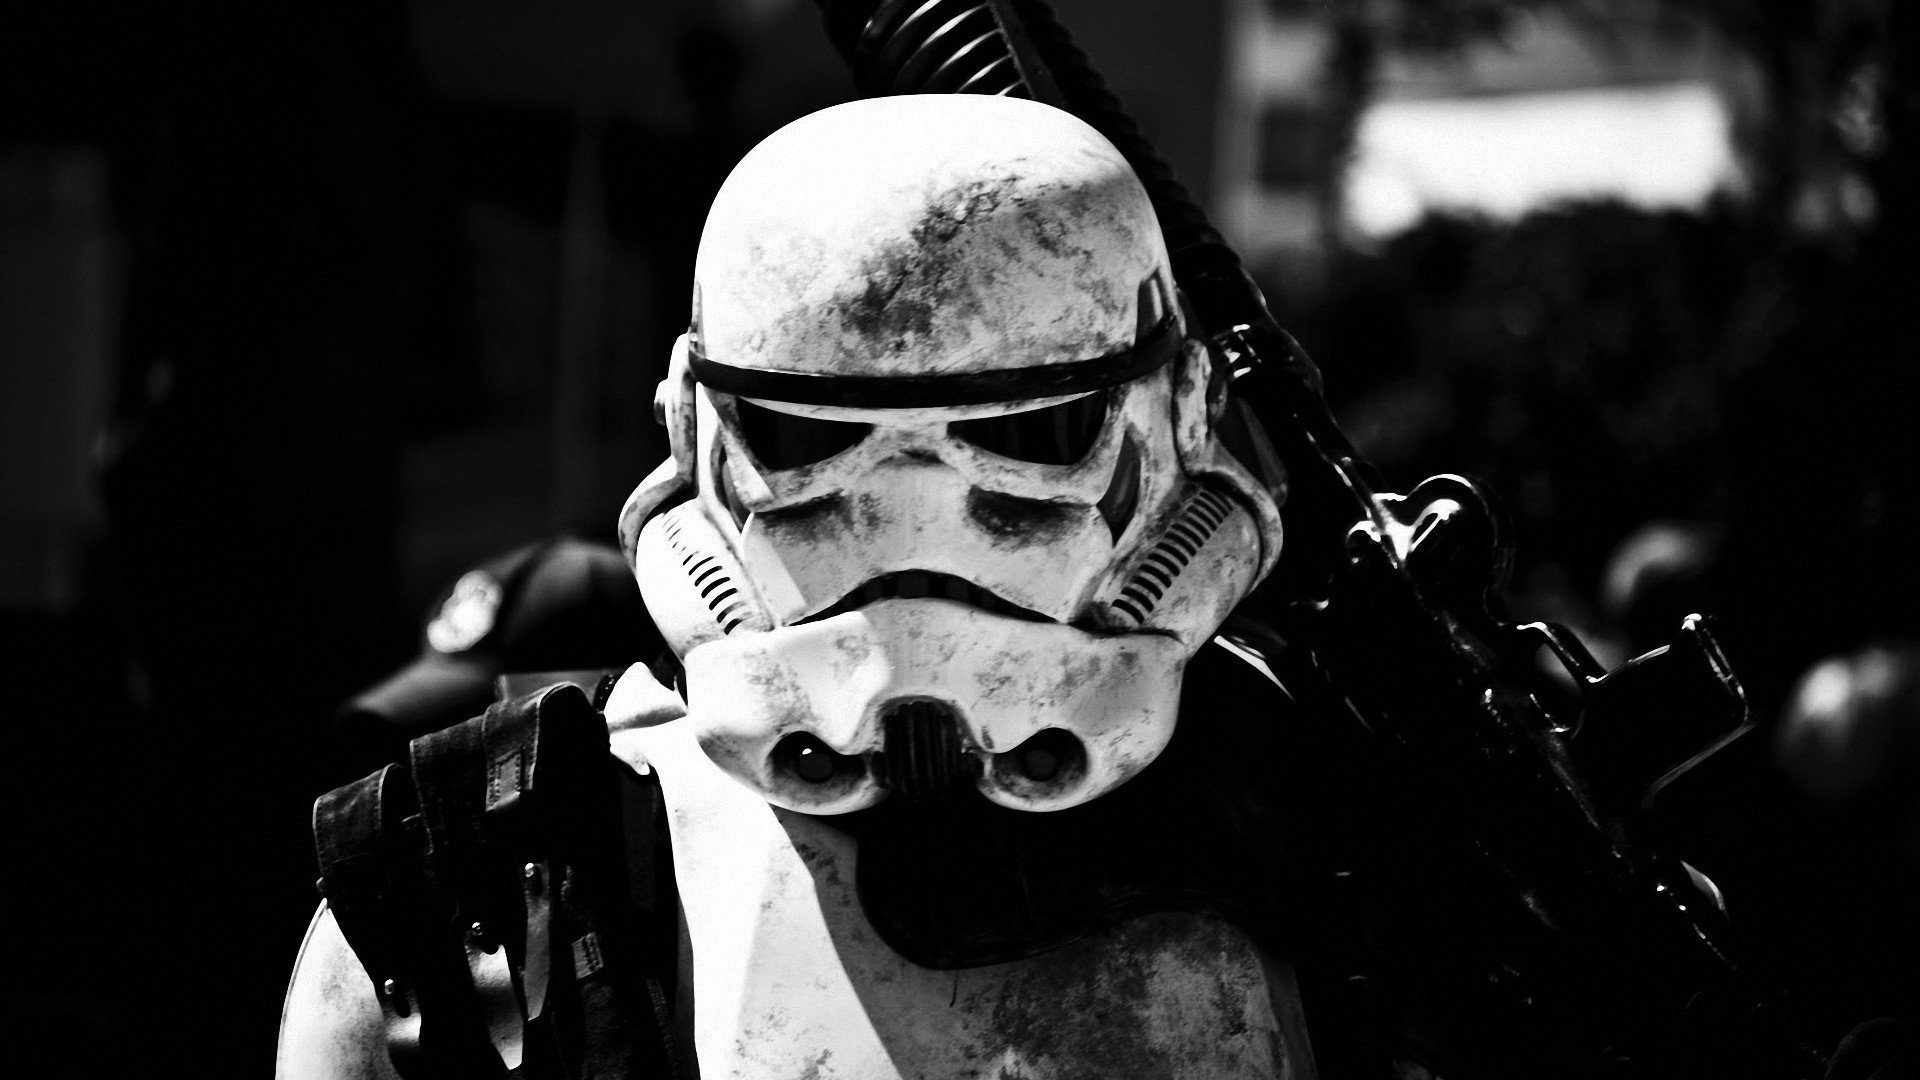 stormtrooper-movie-hd-wallpaper-1920x1080-2826